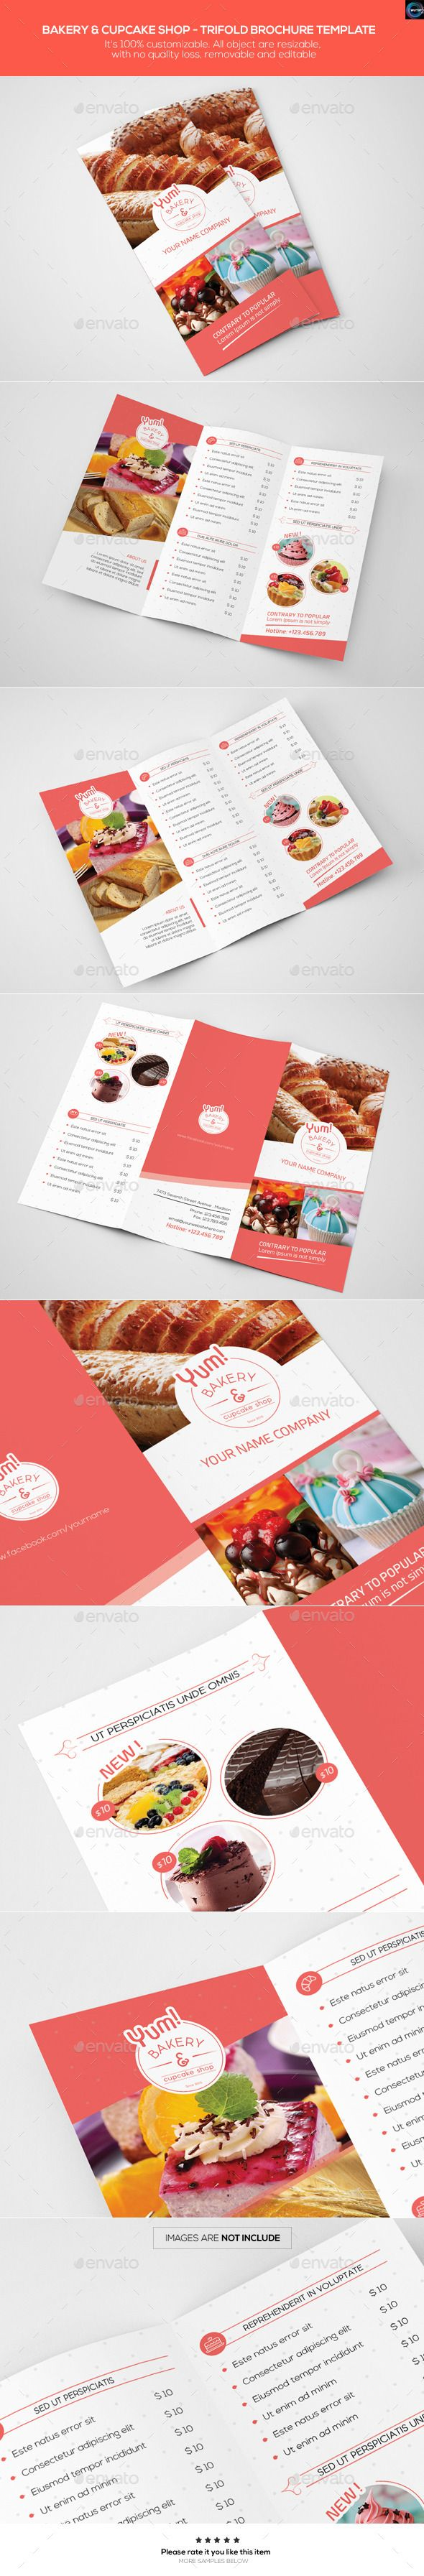 Bakery & Cupcake Shop - Trifold Brochure Template #design #broschüre Download: http://graphicriver.net/item/bakery-cupcake-shop-trifold-brochure-template/12494130?ref=ksioks